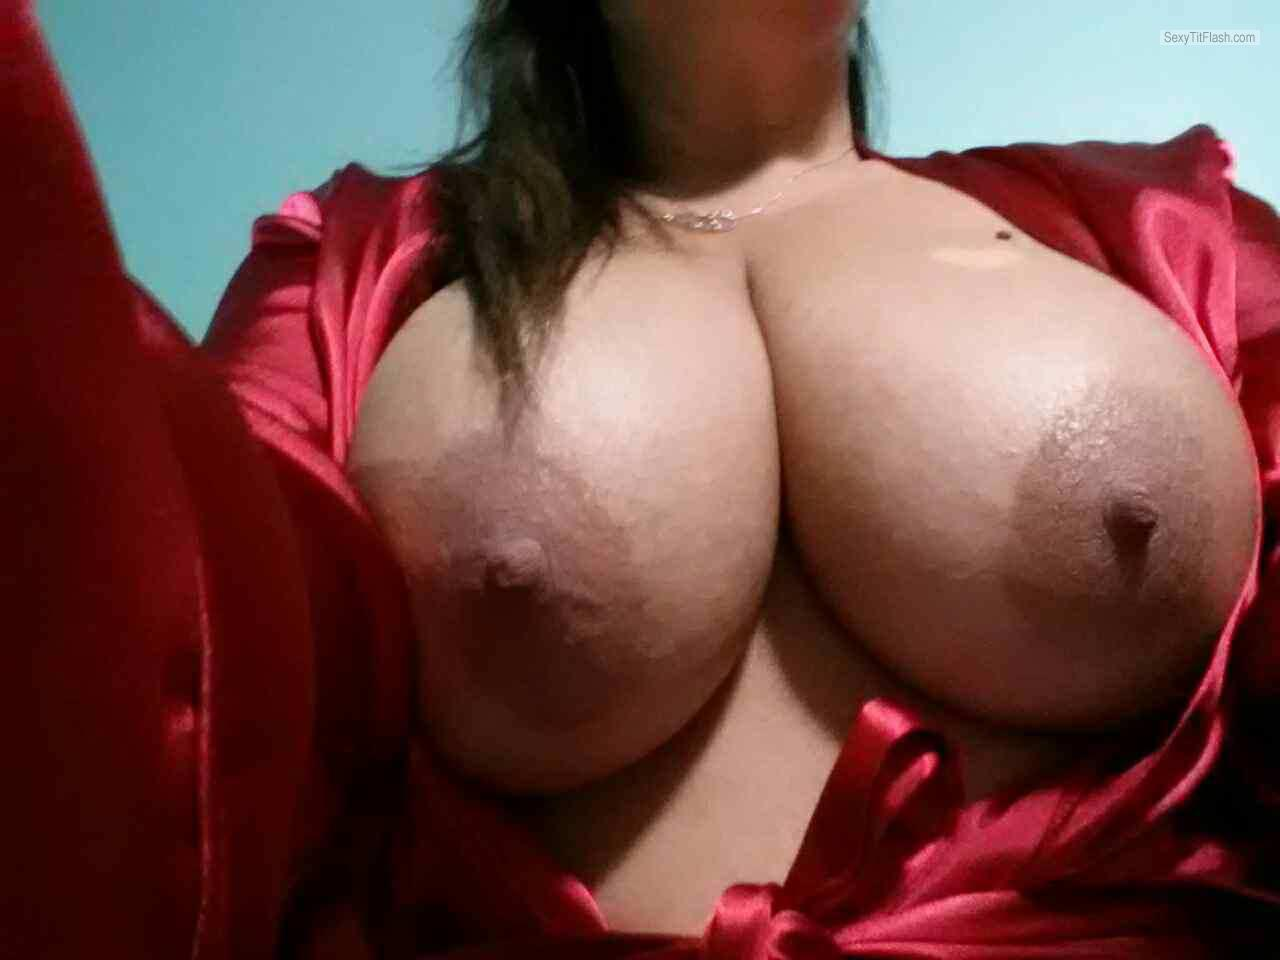 Big Tits Of My Wife Josie And Hubby